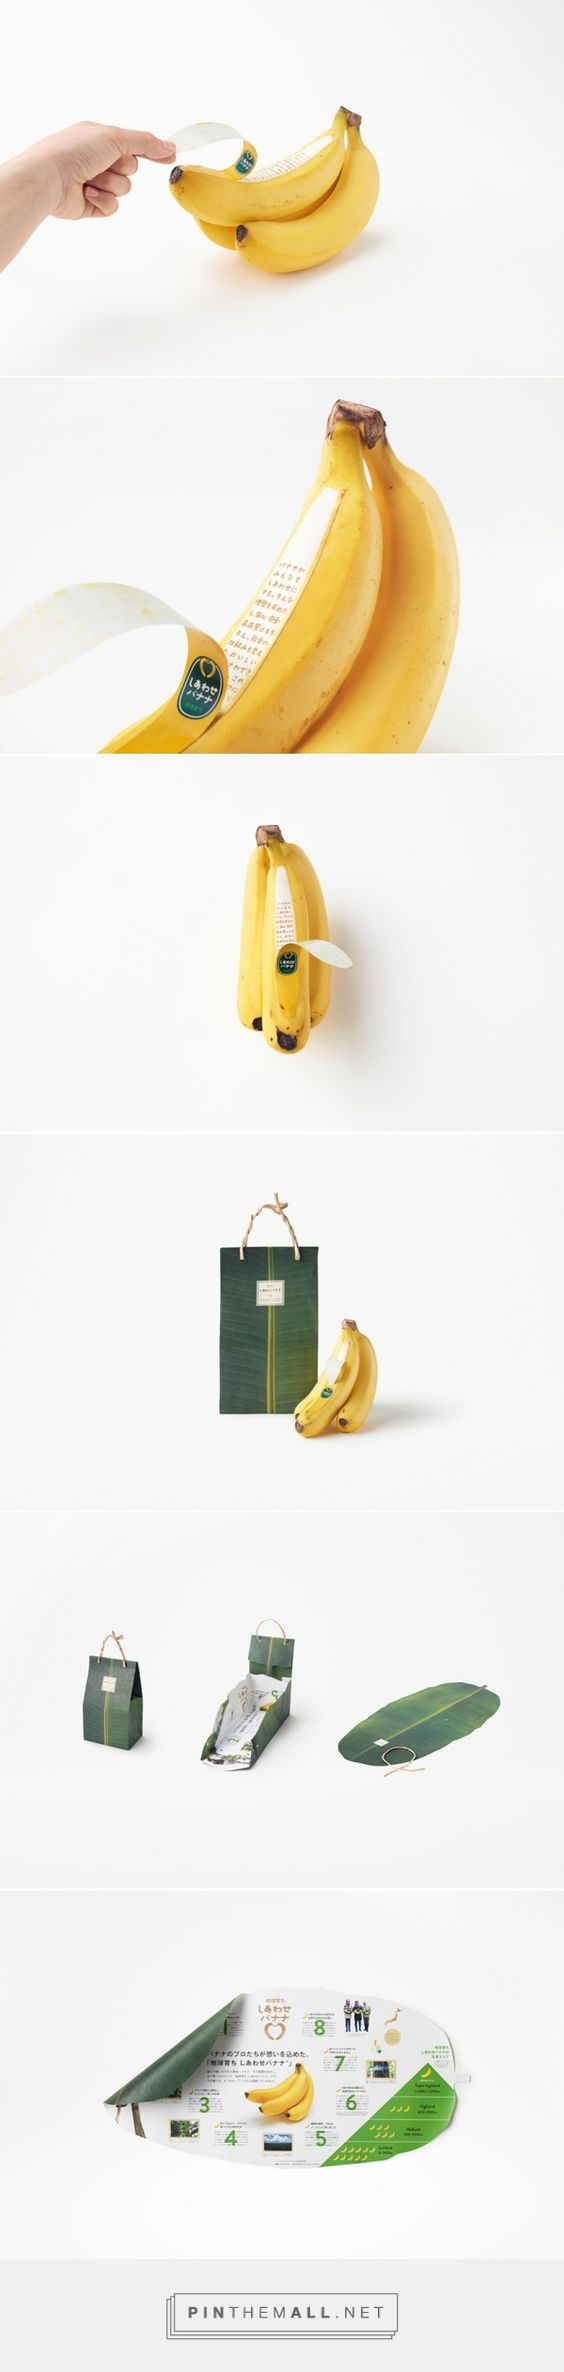 nendo designs peelable package and label for shiawase bananas... - a grouped images picture - Pin Them All